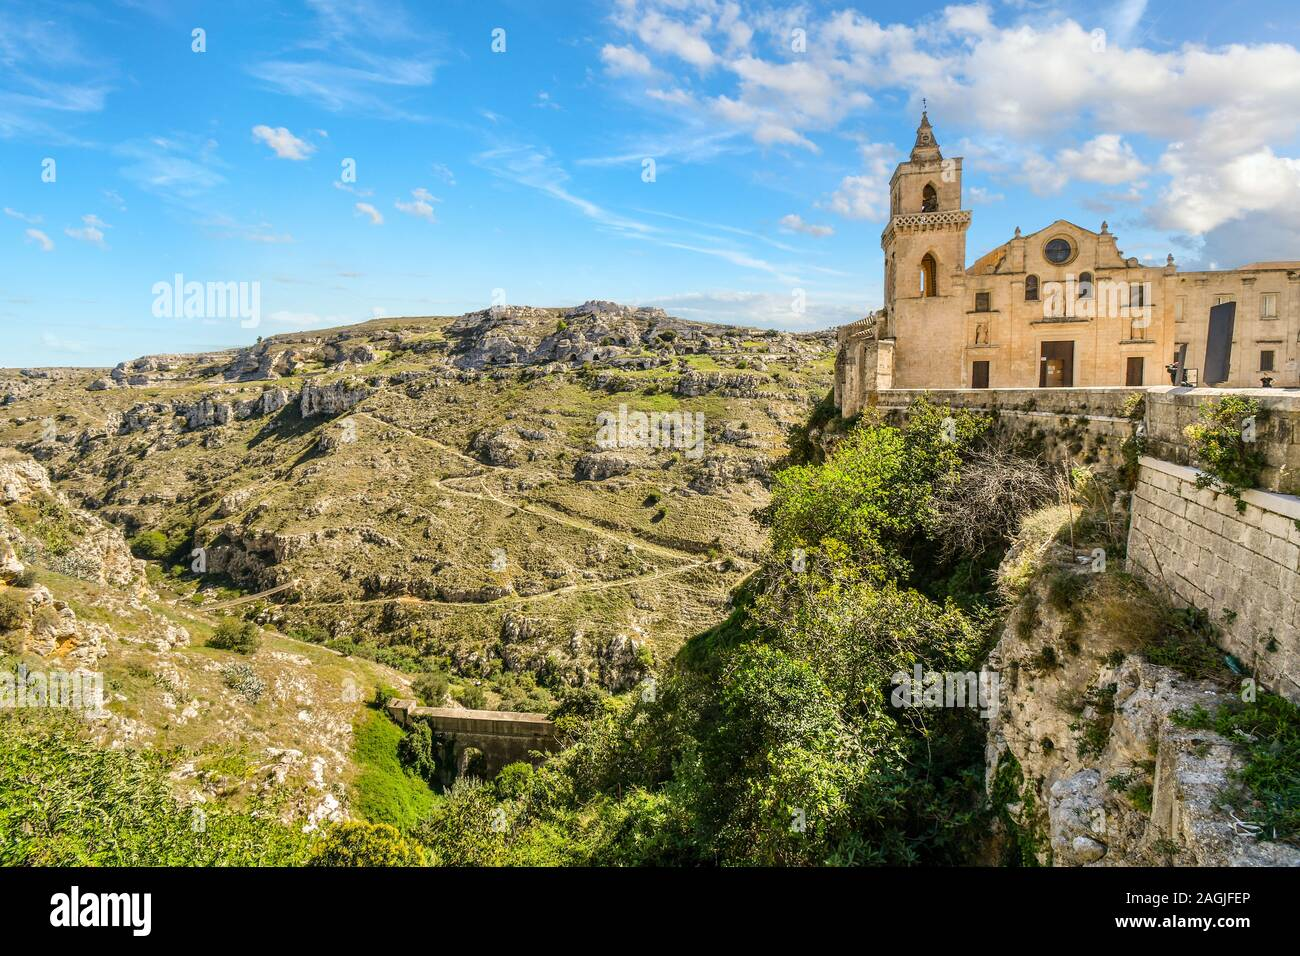 Paths from the ancient sassi caves cut down the mountainside and into the canyon in Matera, Italy, as the San Pietro Caveoso Church sits atop a cliff Stock Photo